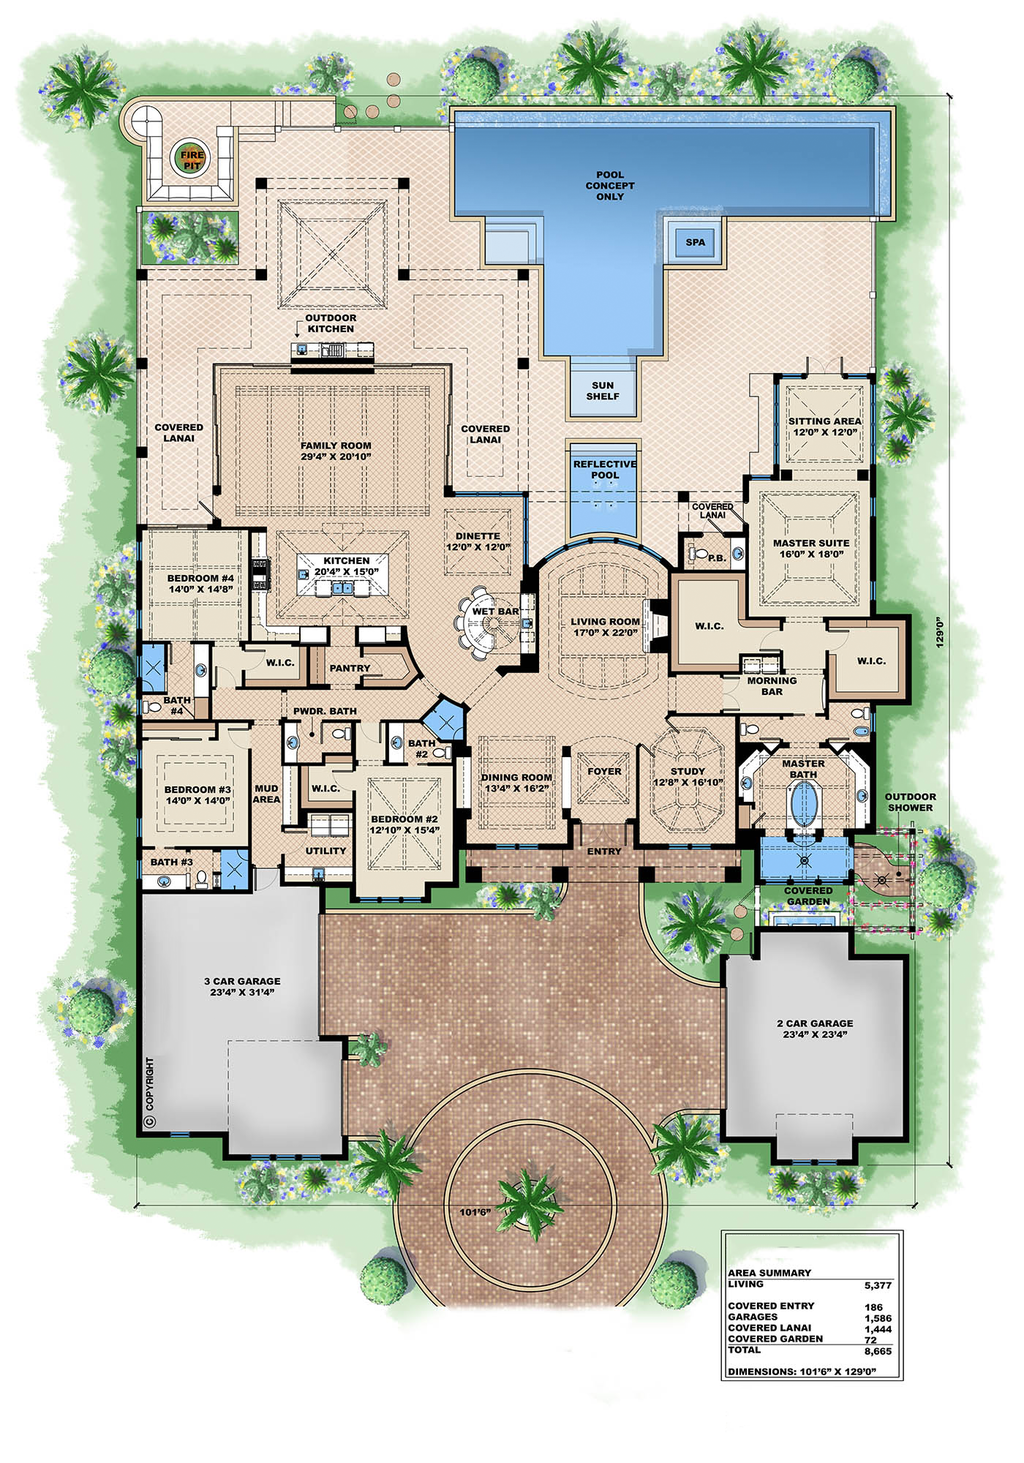 European Style House Plan 4 Beds 4 75 Baths 5377 Sq Ft Plan 27 455 Dream House Plans House Plans House Floor Plans